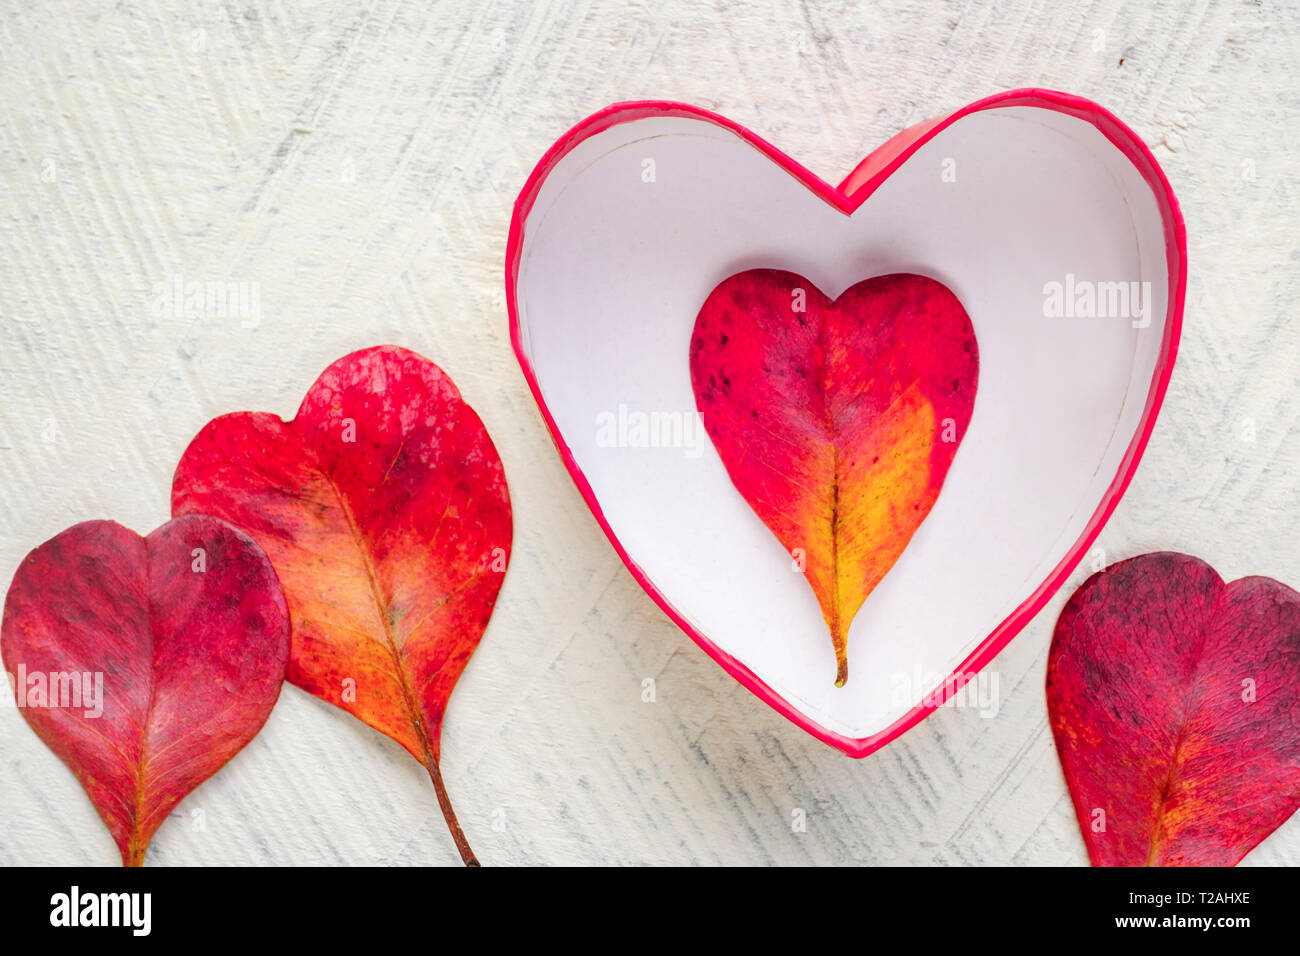 Red heart shaped leaves and bowl - Stock Image